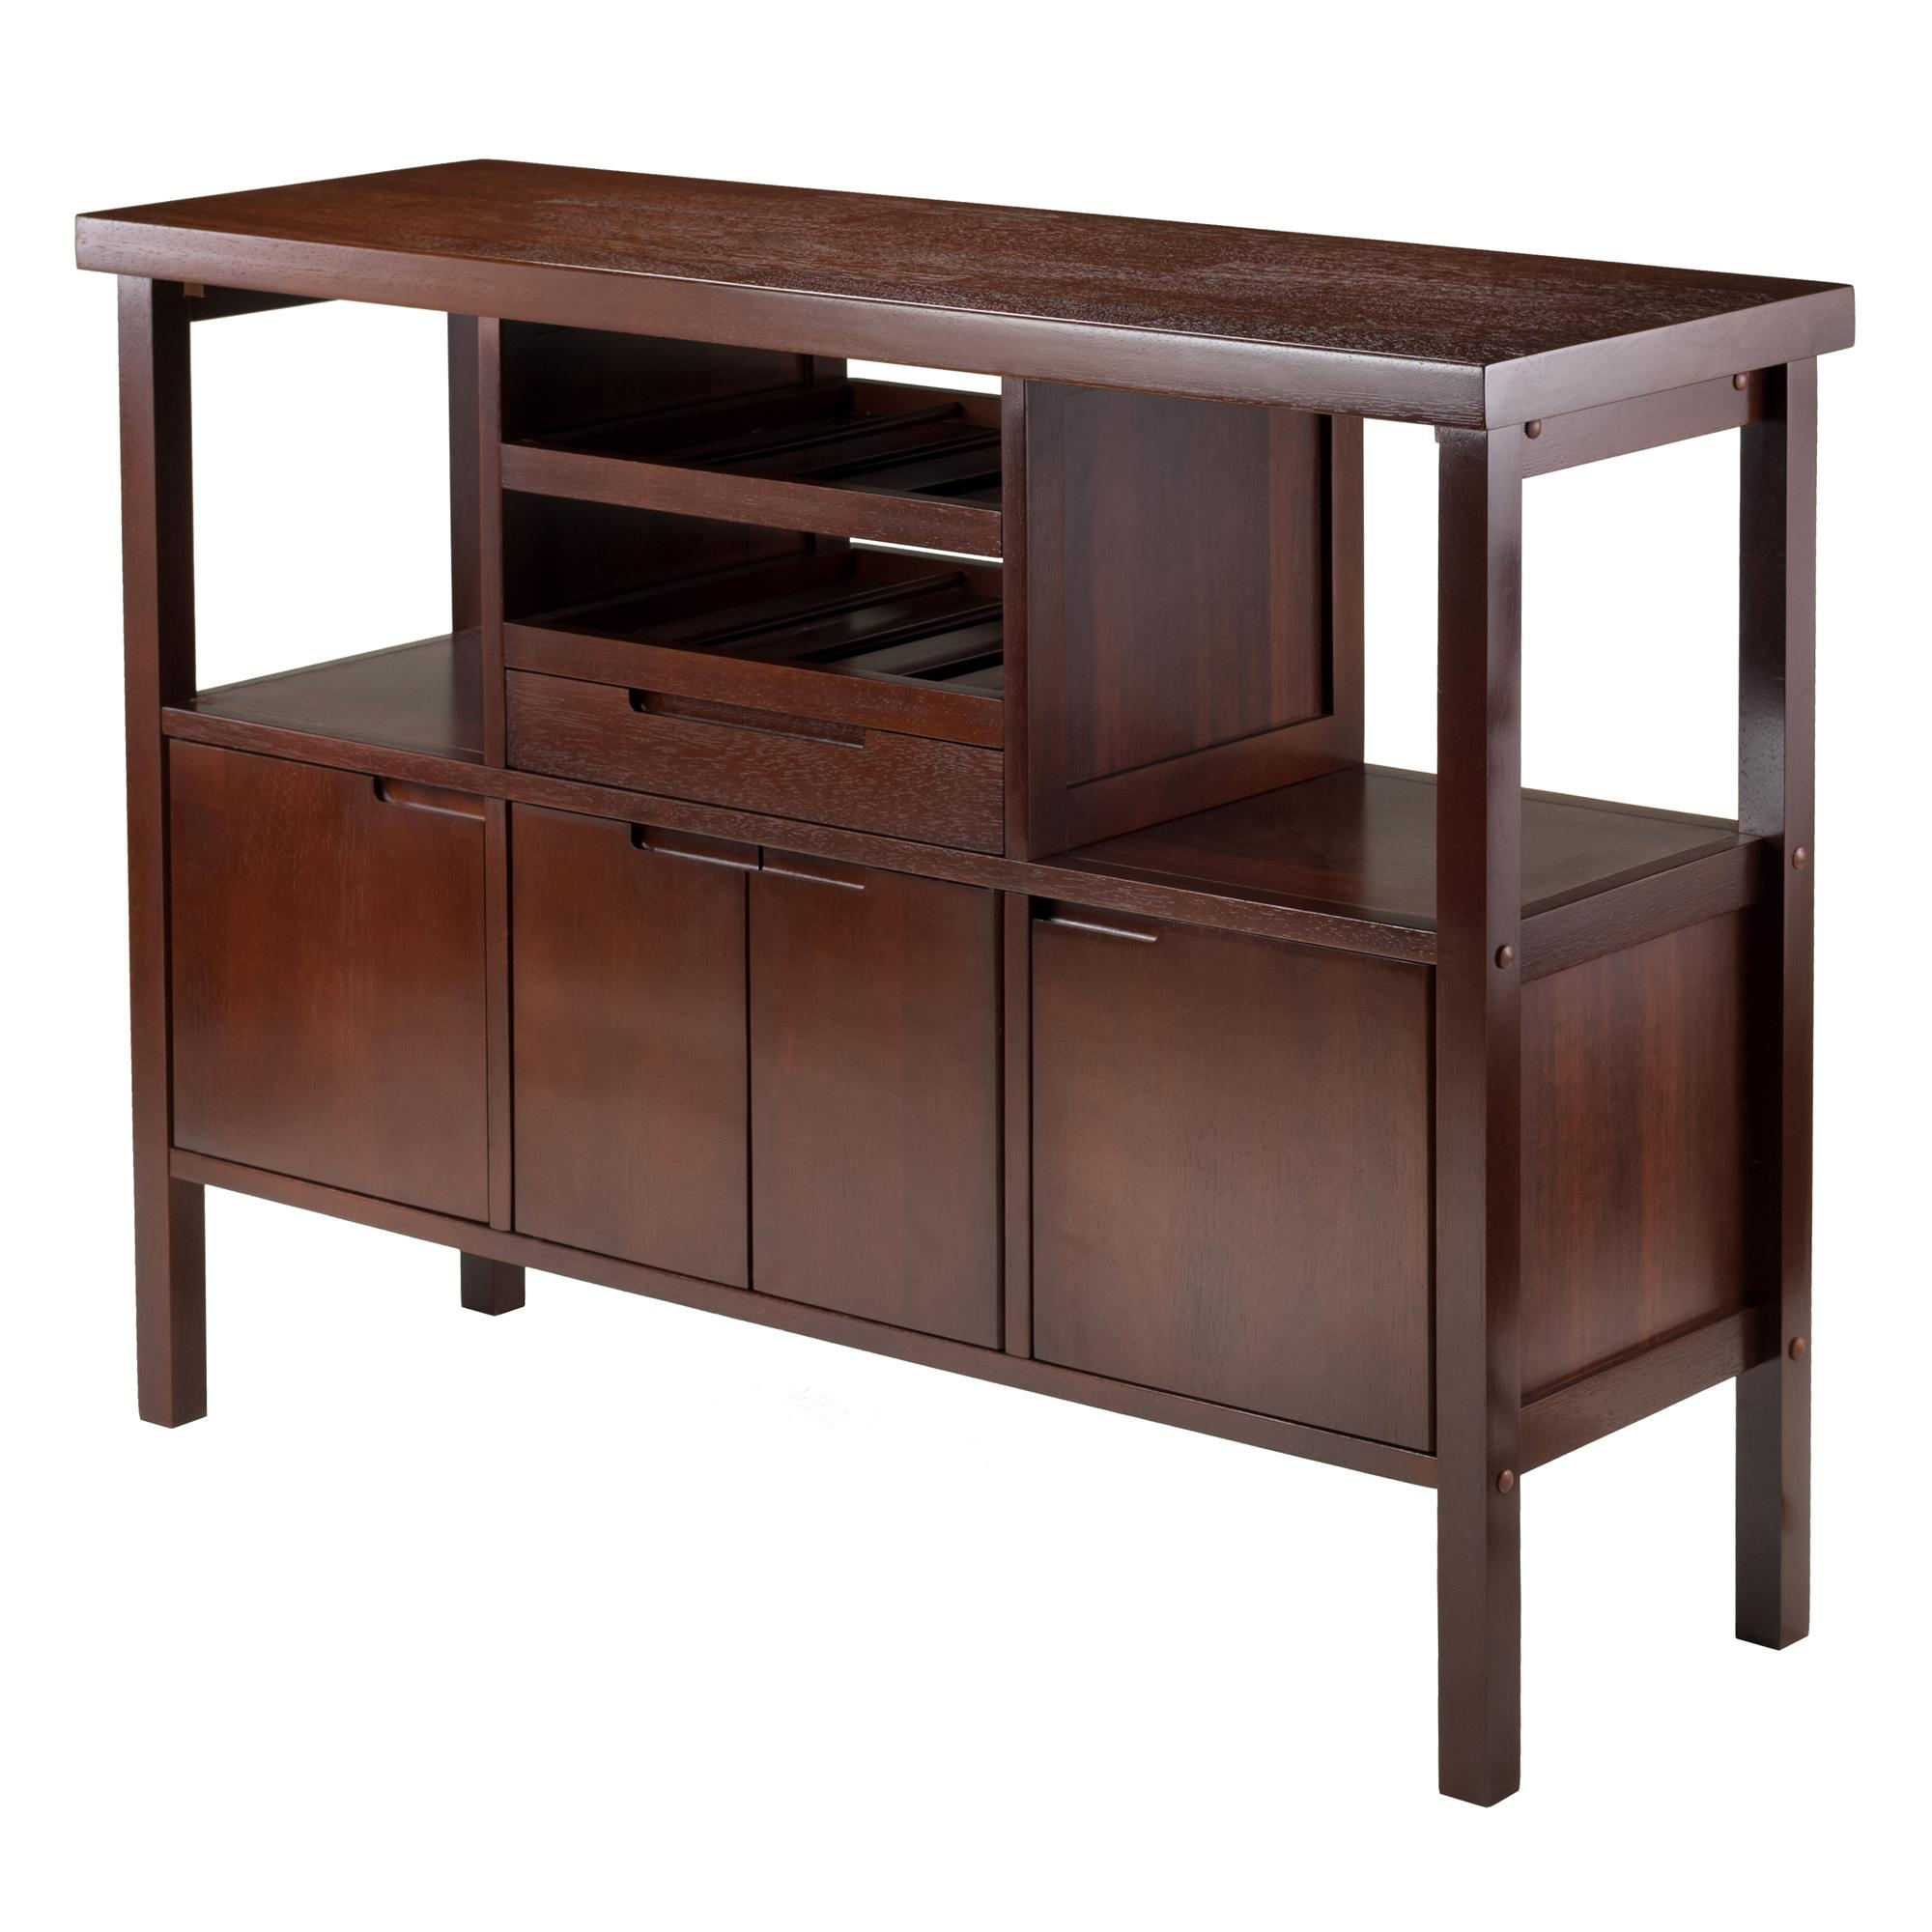 Amazon.com - Winsome Diego Buffet/Sideboard Table, Brown